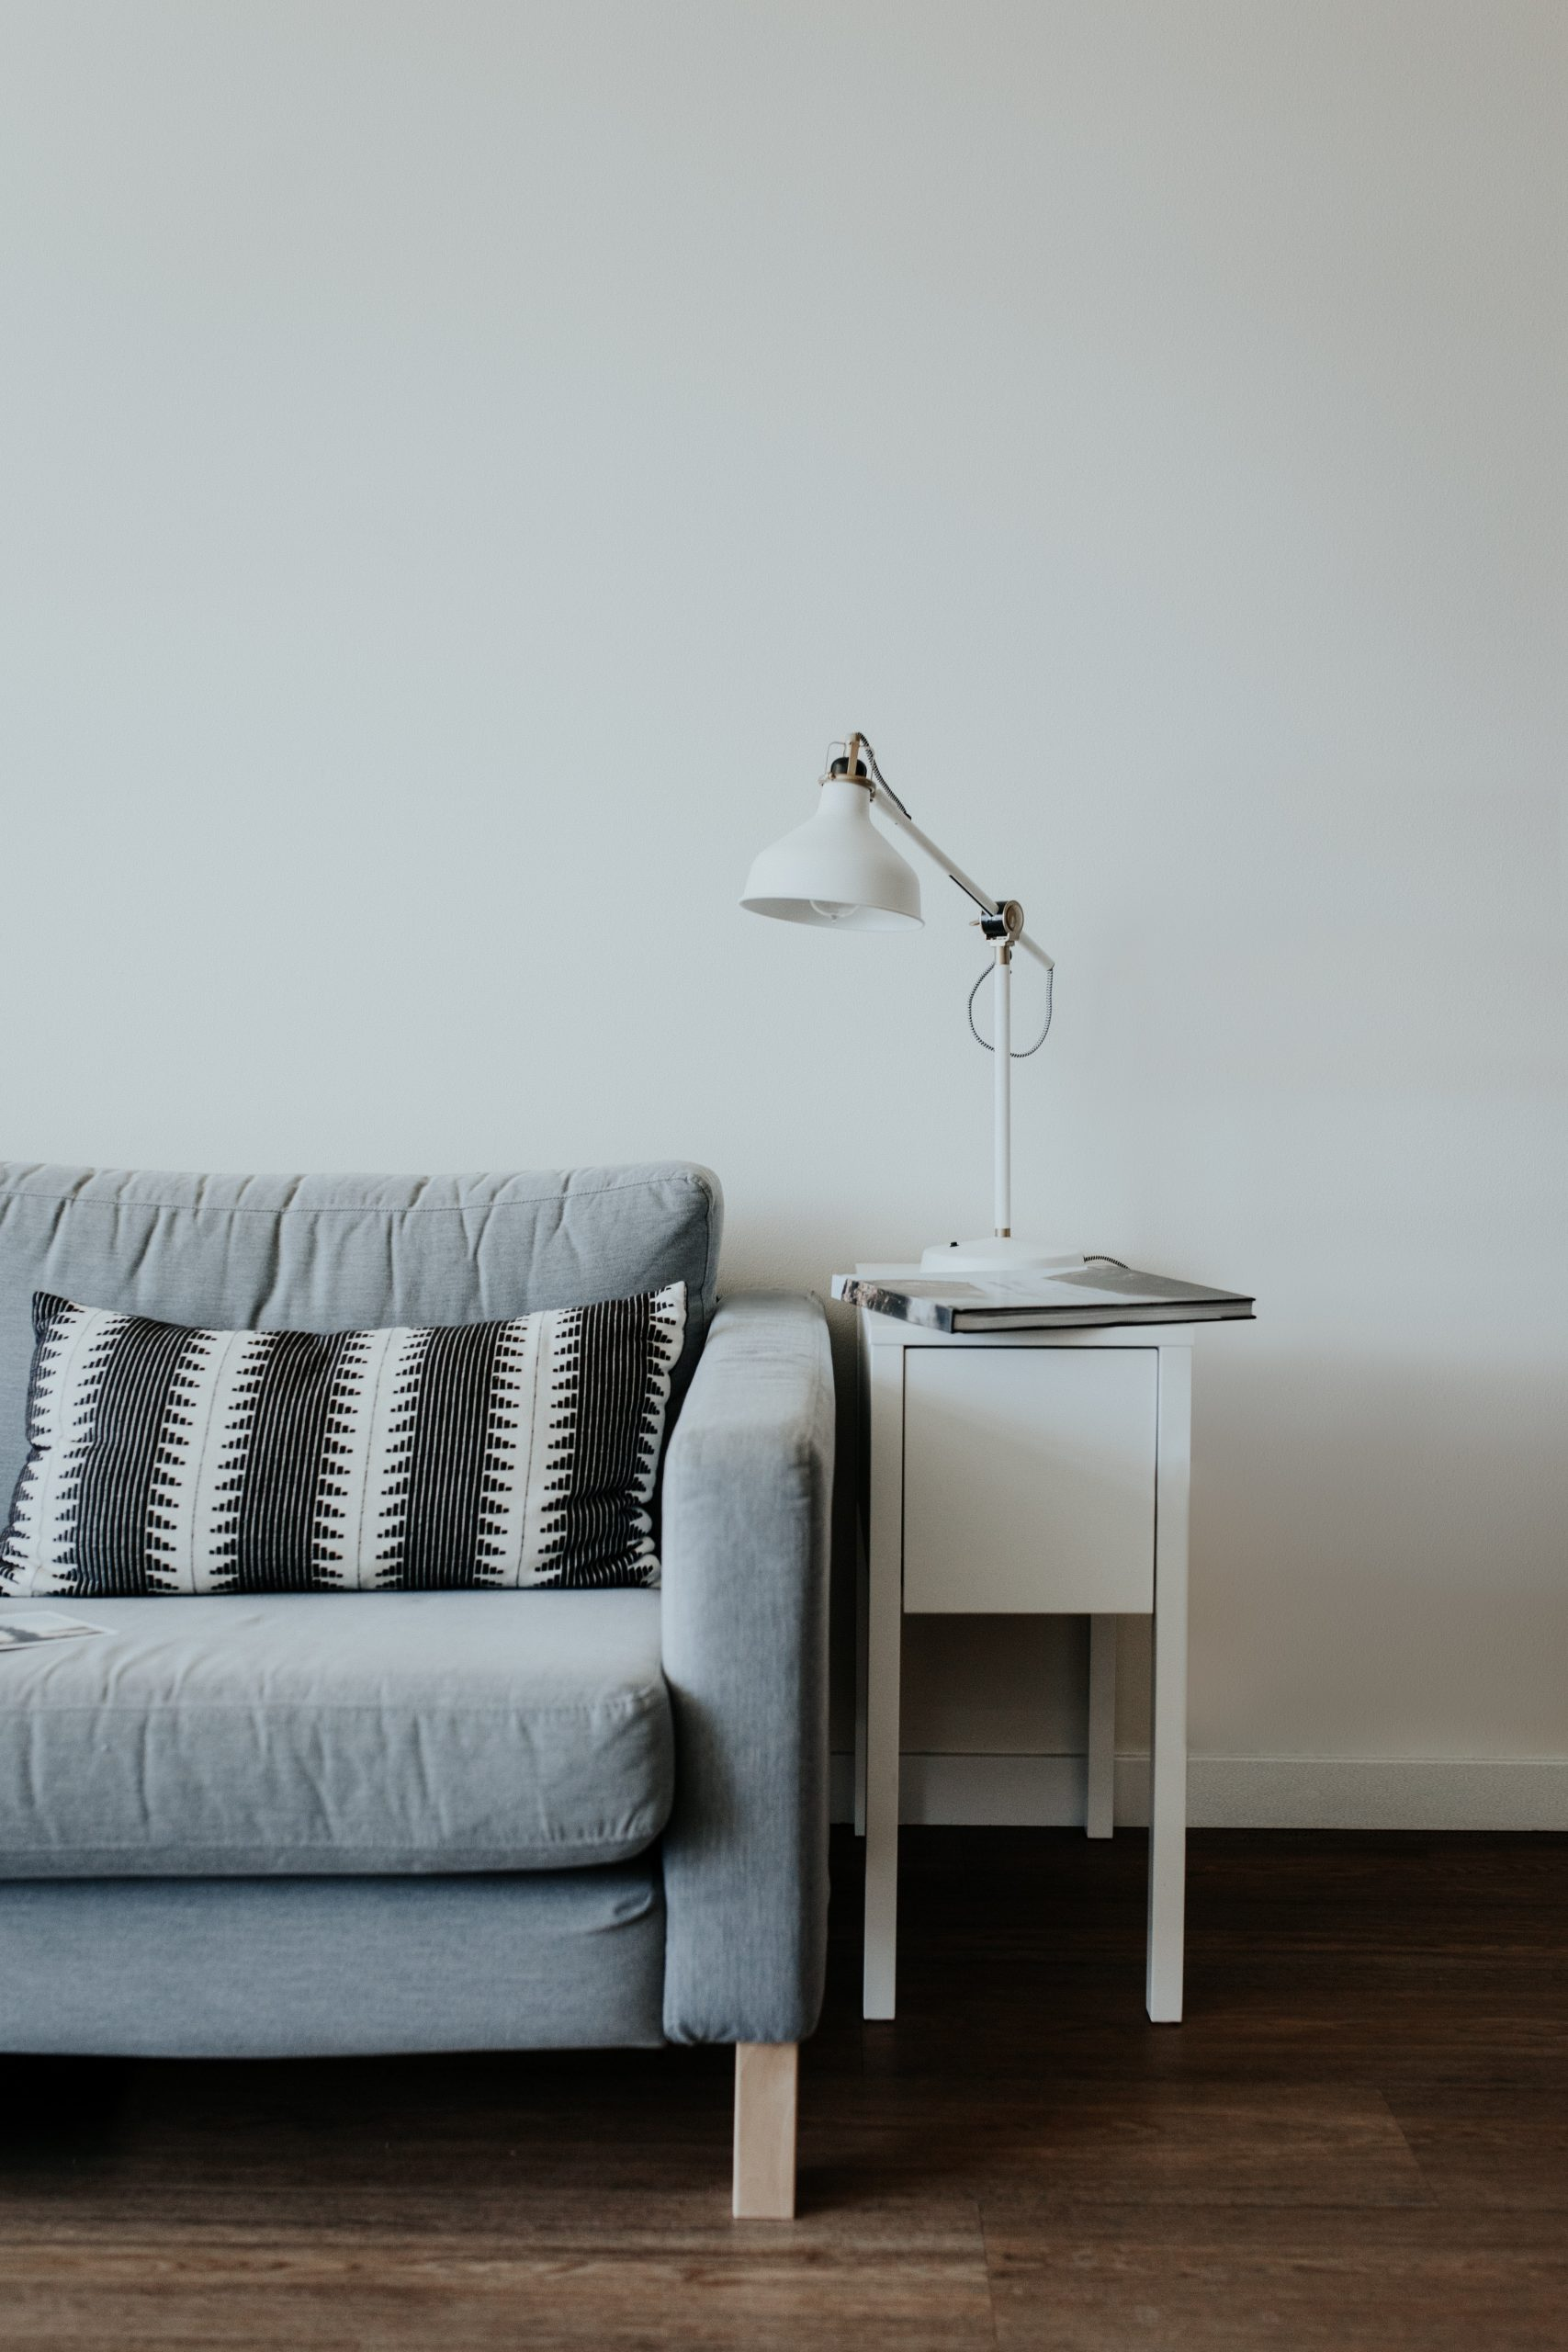 COHO-by-Vista-Land-Styling-Tips-to-Make-your-Space-Look-Bigger-Scaling-Furnitures